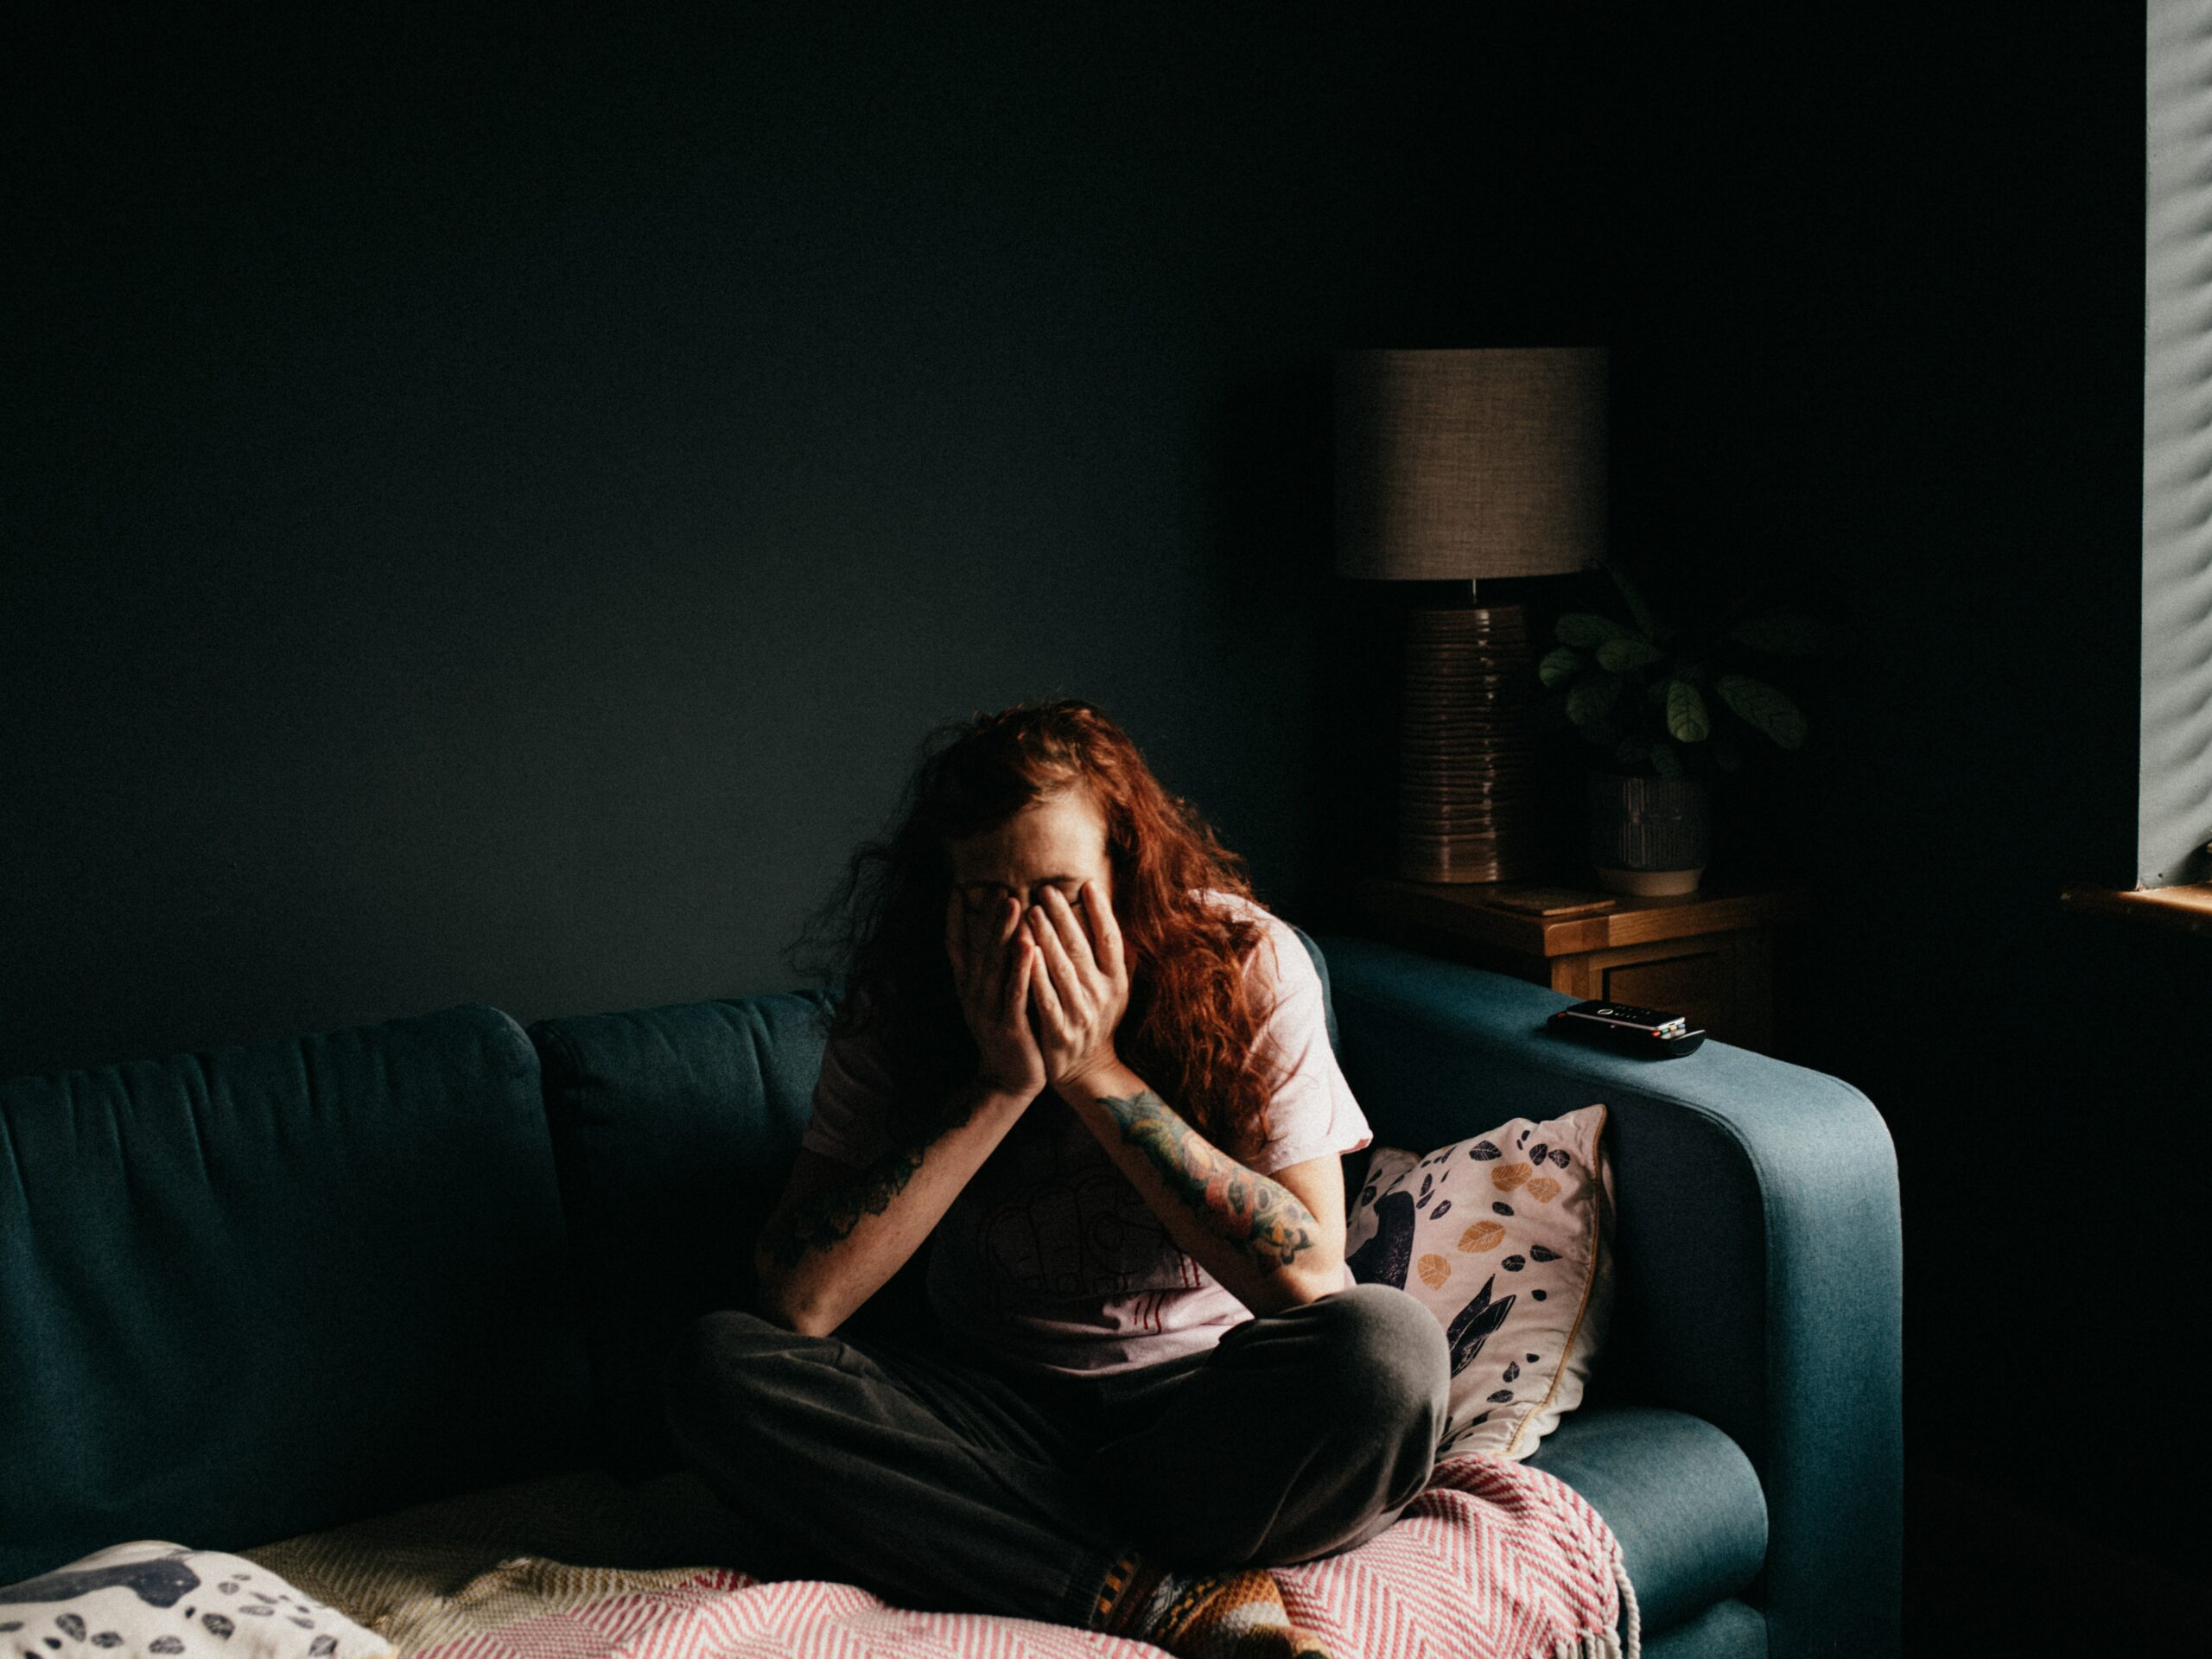 A person sitting on the couch in the dark with hands on their face